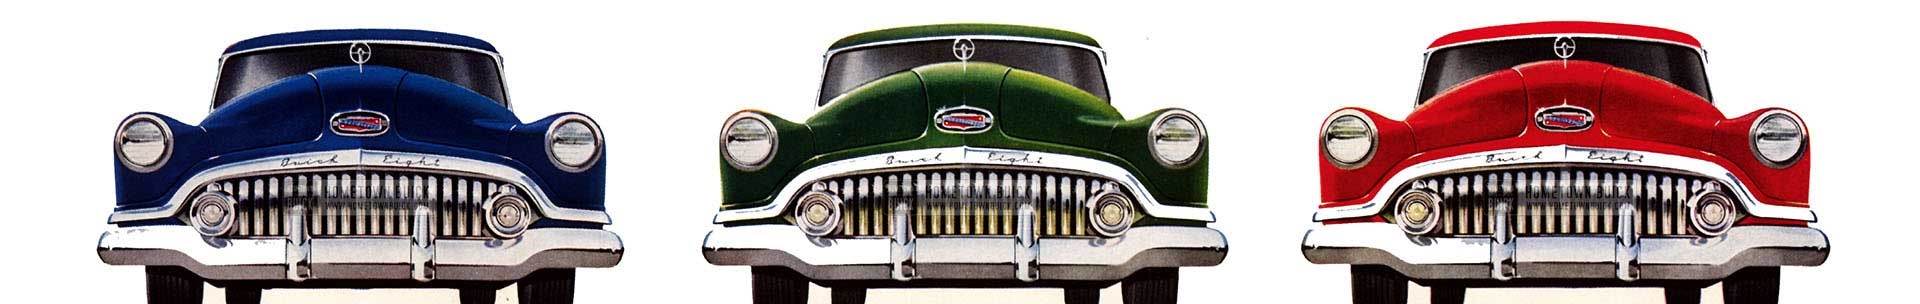 1952 Buick Models Slider